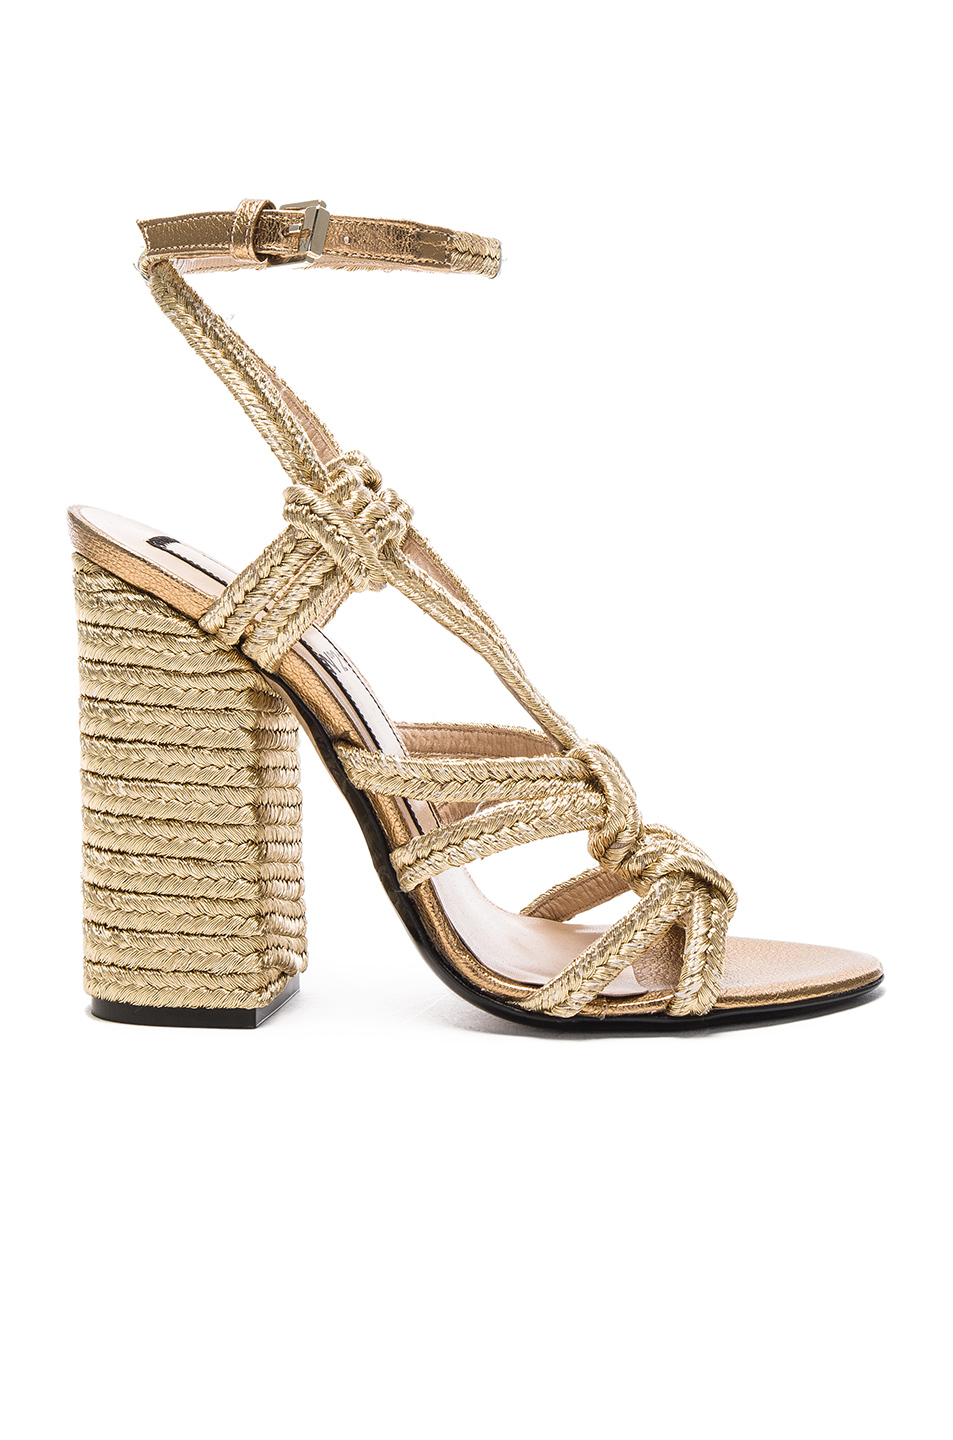 No. 21 Espadrille Heel in Metallics